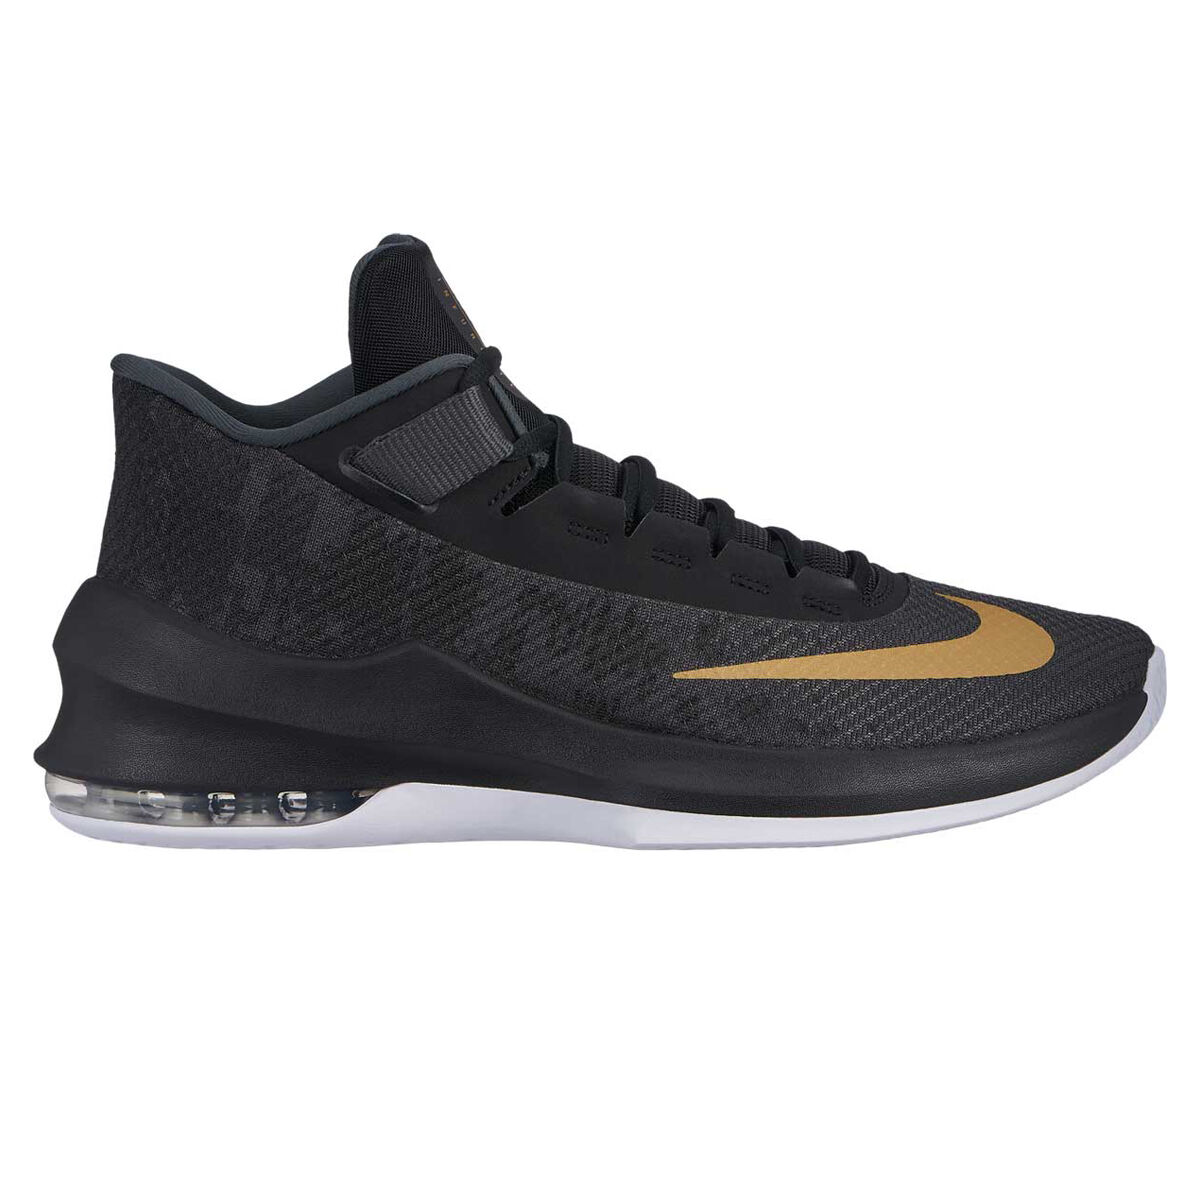 Nike Air Max Infuriate 2 Mens Basketball Shoes